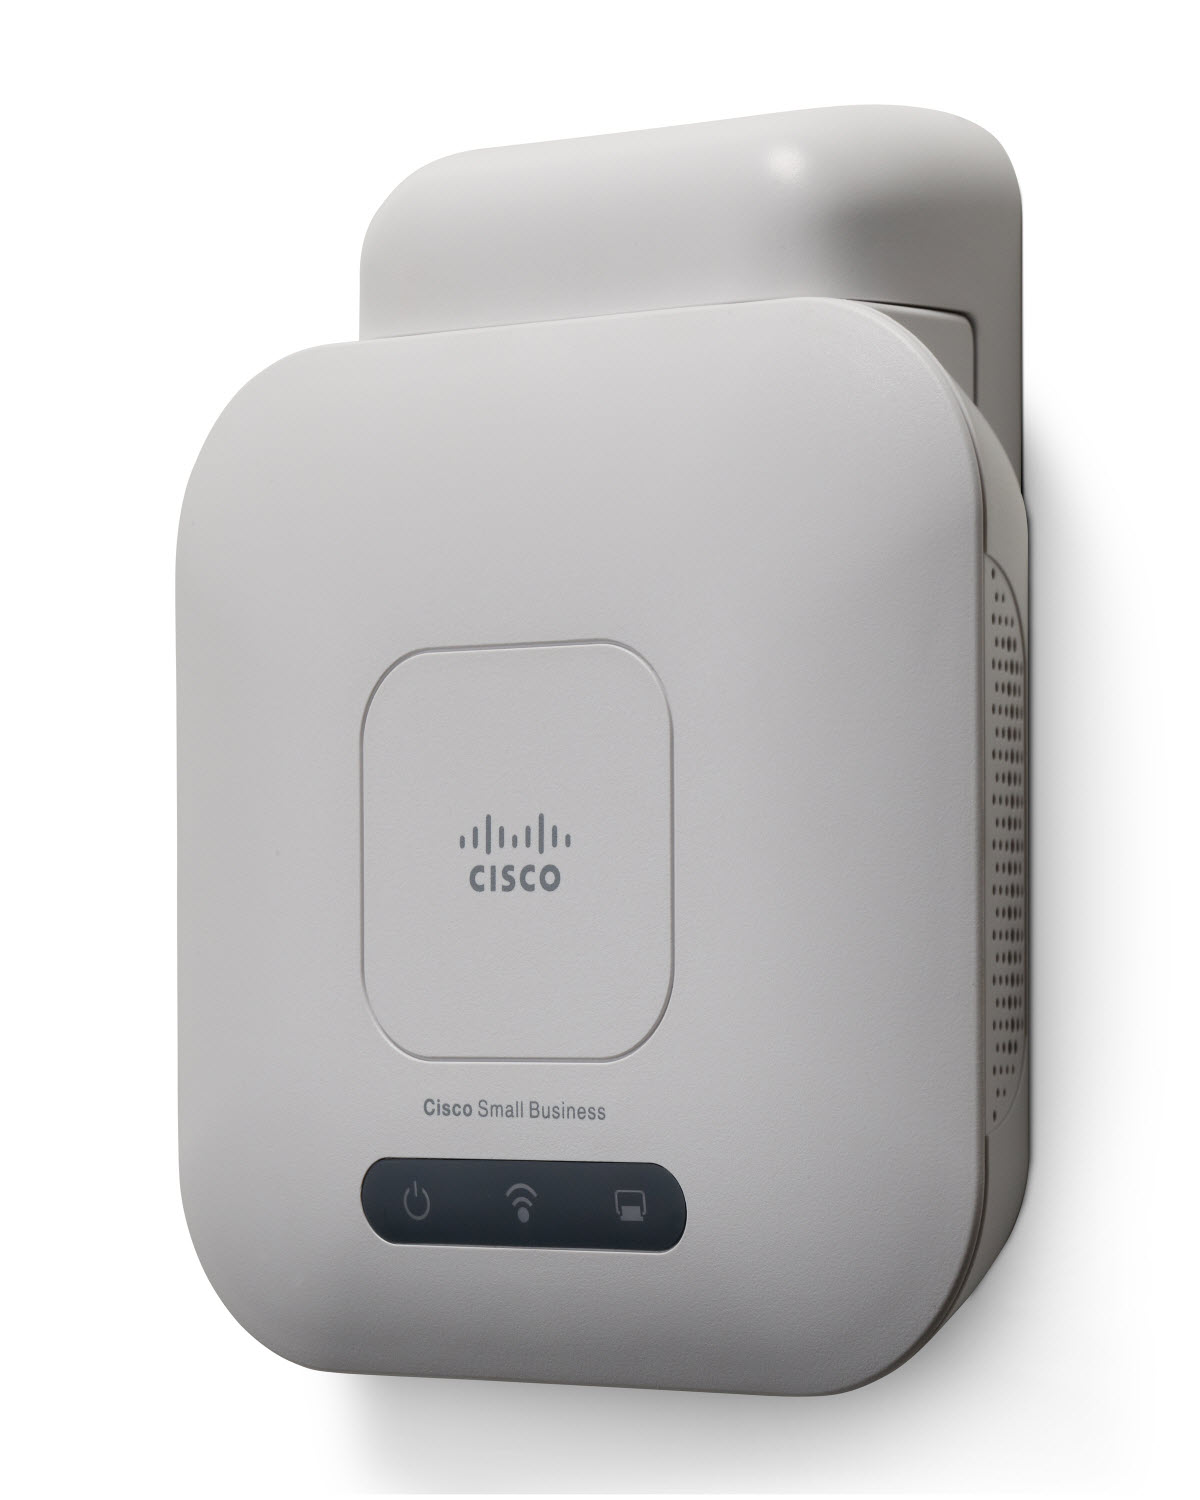 Wireless Access Points Online Device Em... - Cisco Community